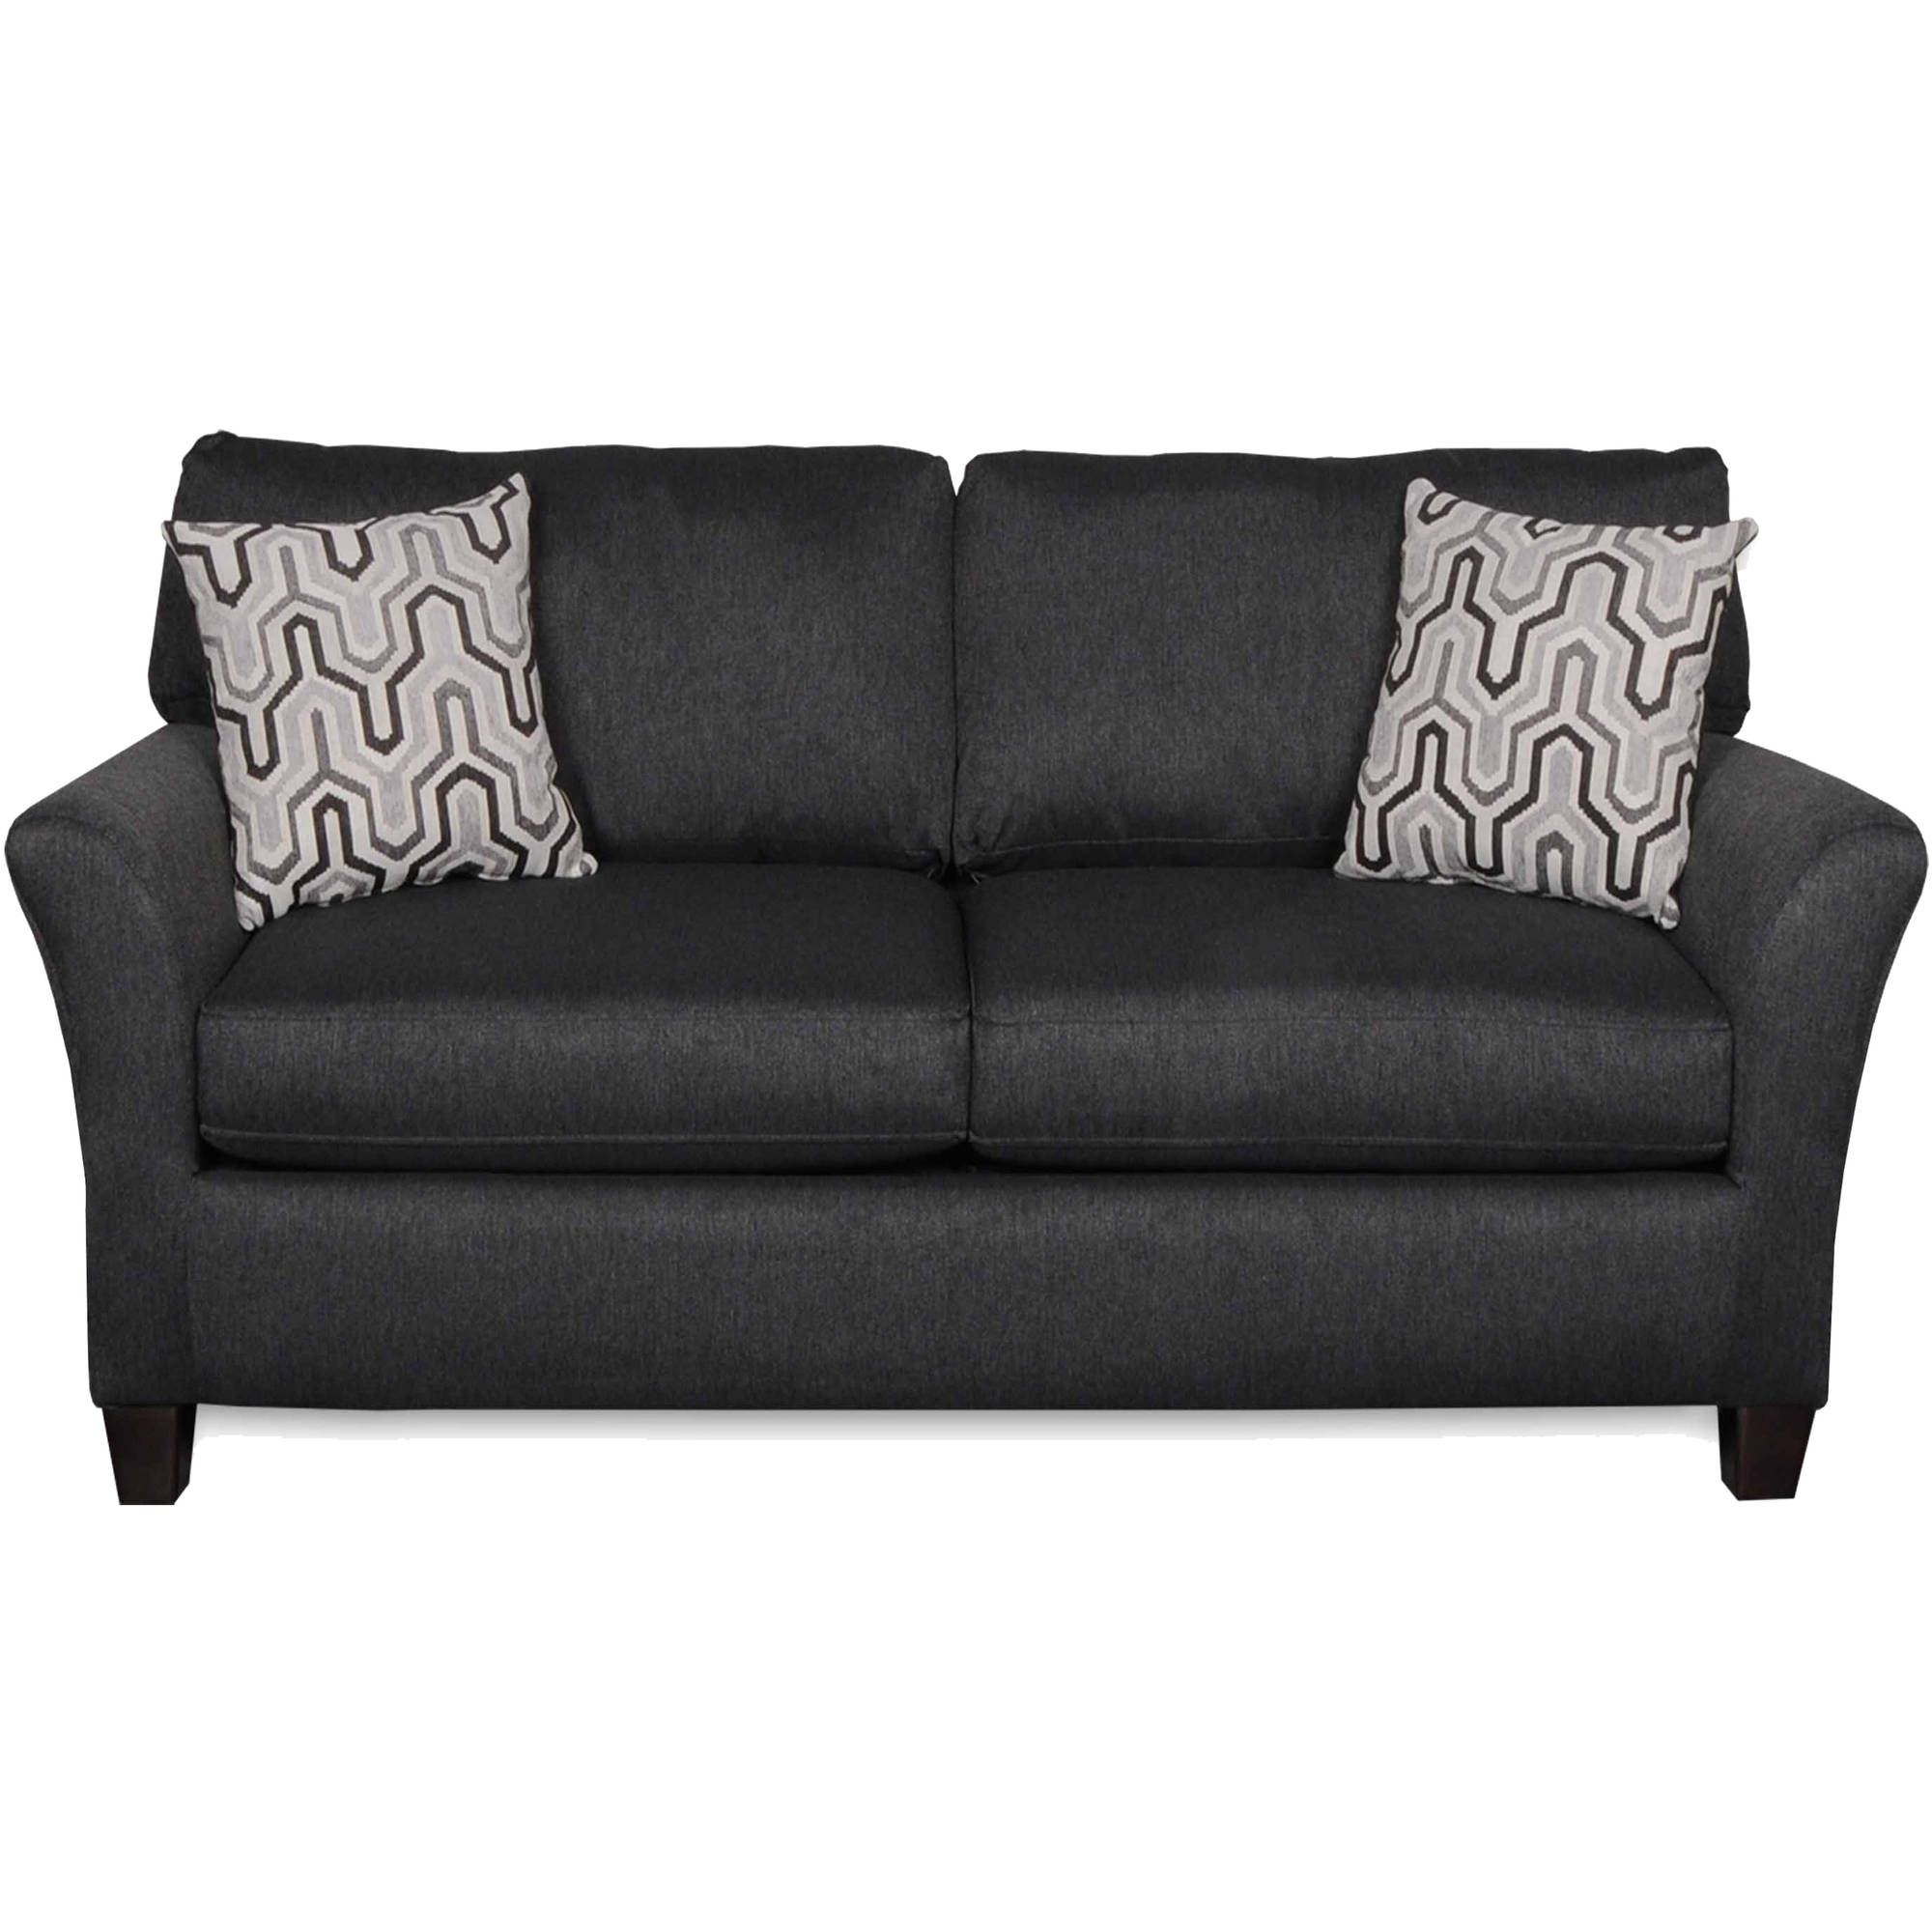 SoFab Shag II Dark Grey Love Seat with 2 Reversible Accent Pillows